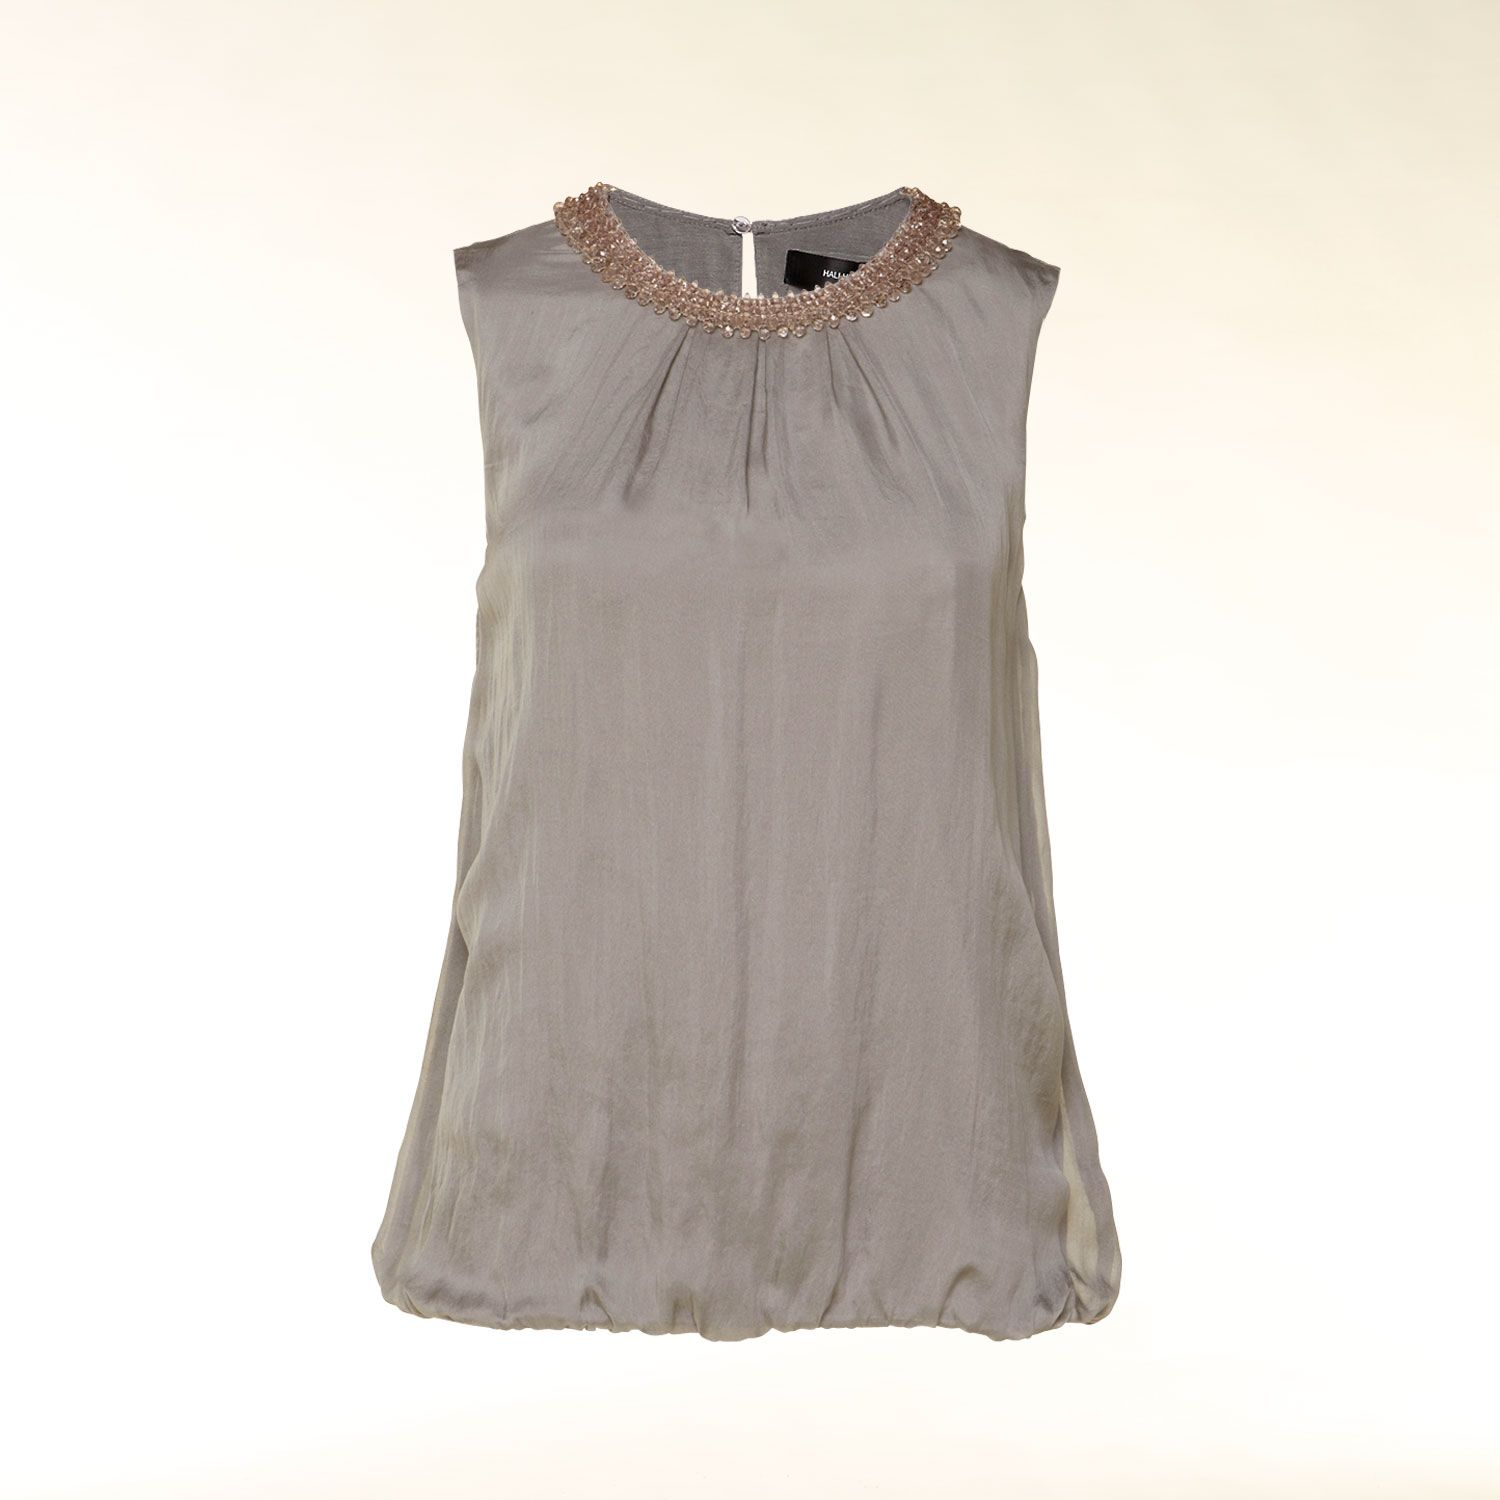 Silk top with pearl embellished neckline